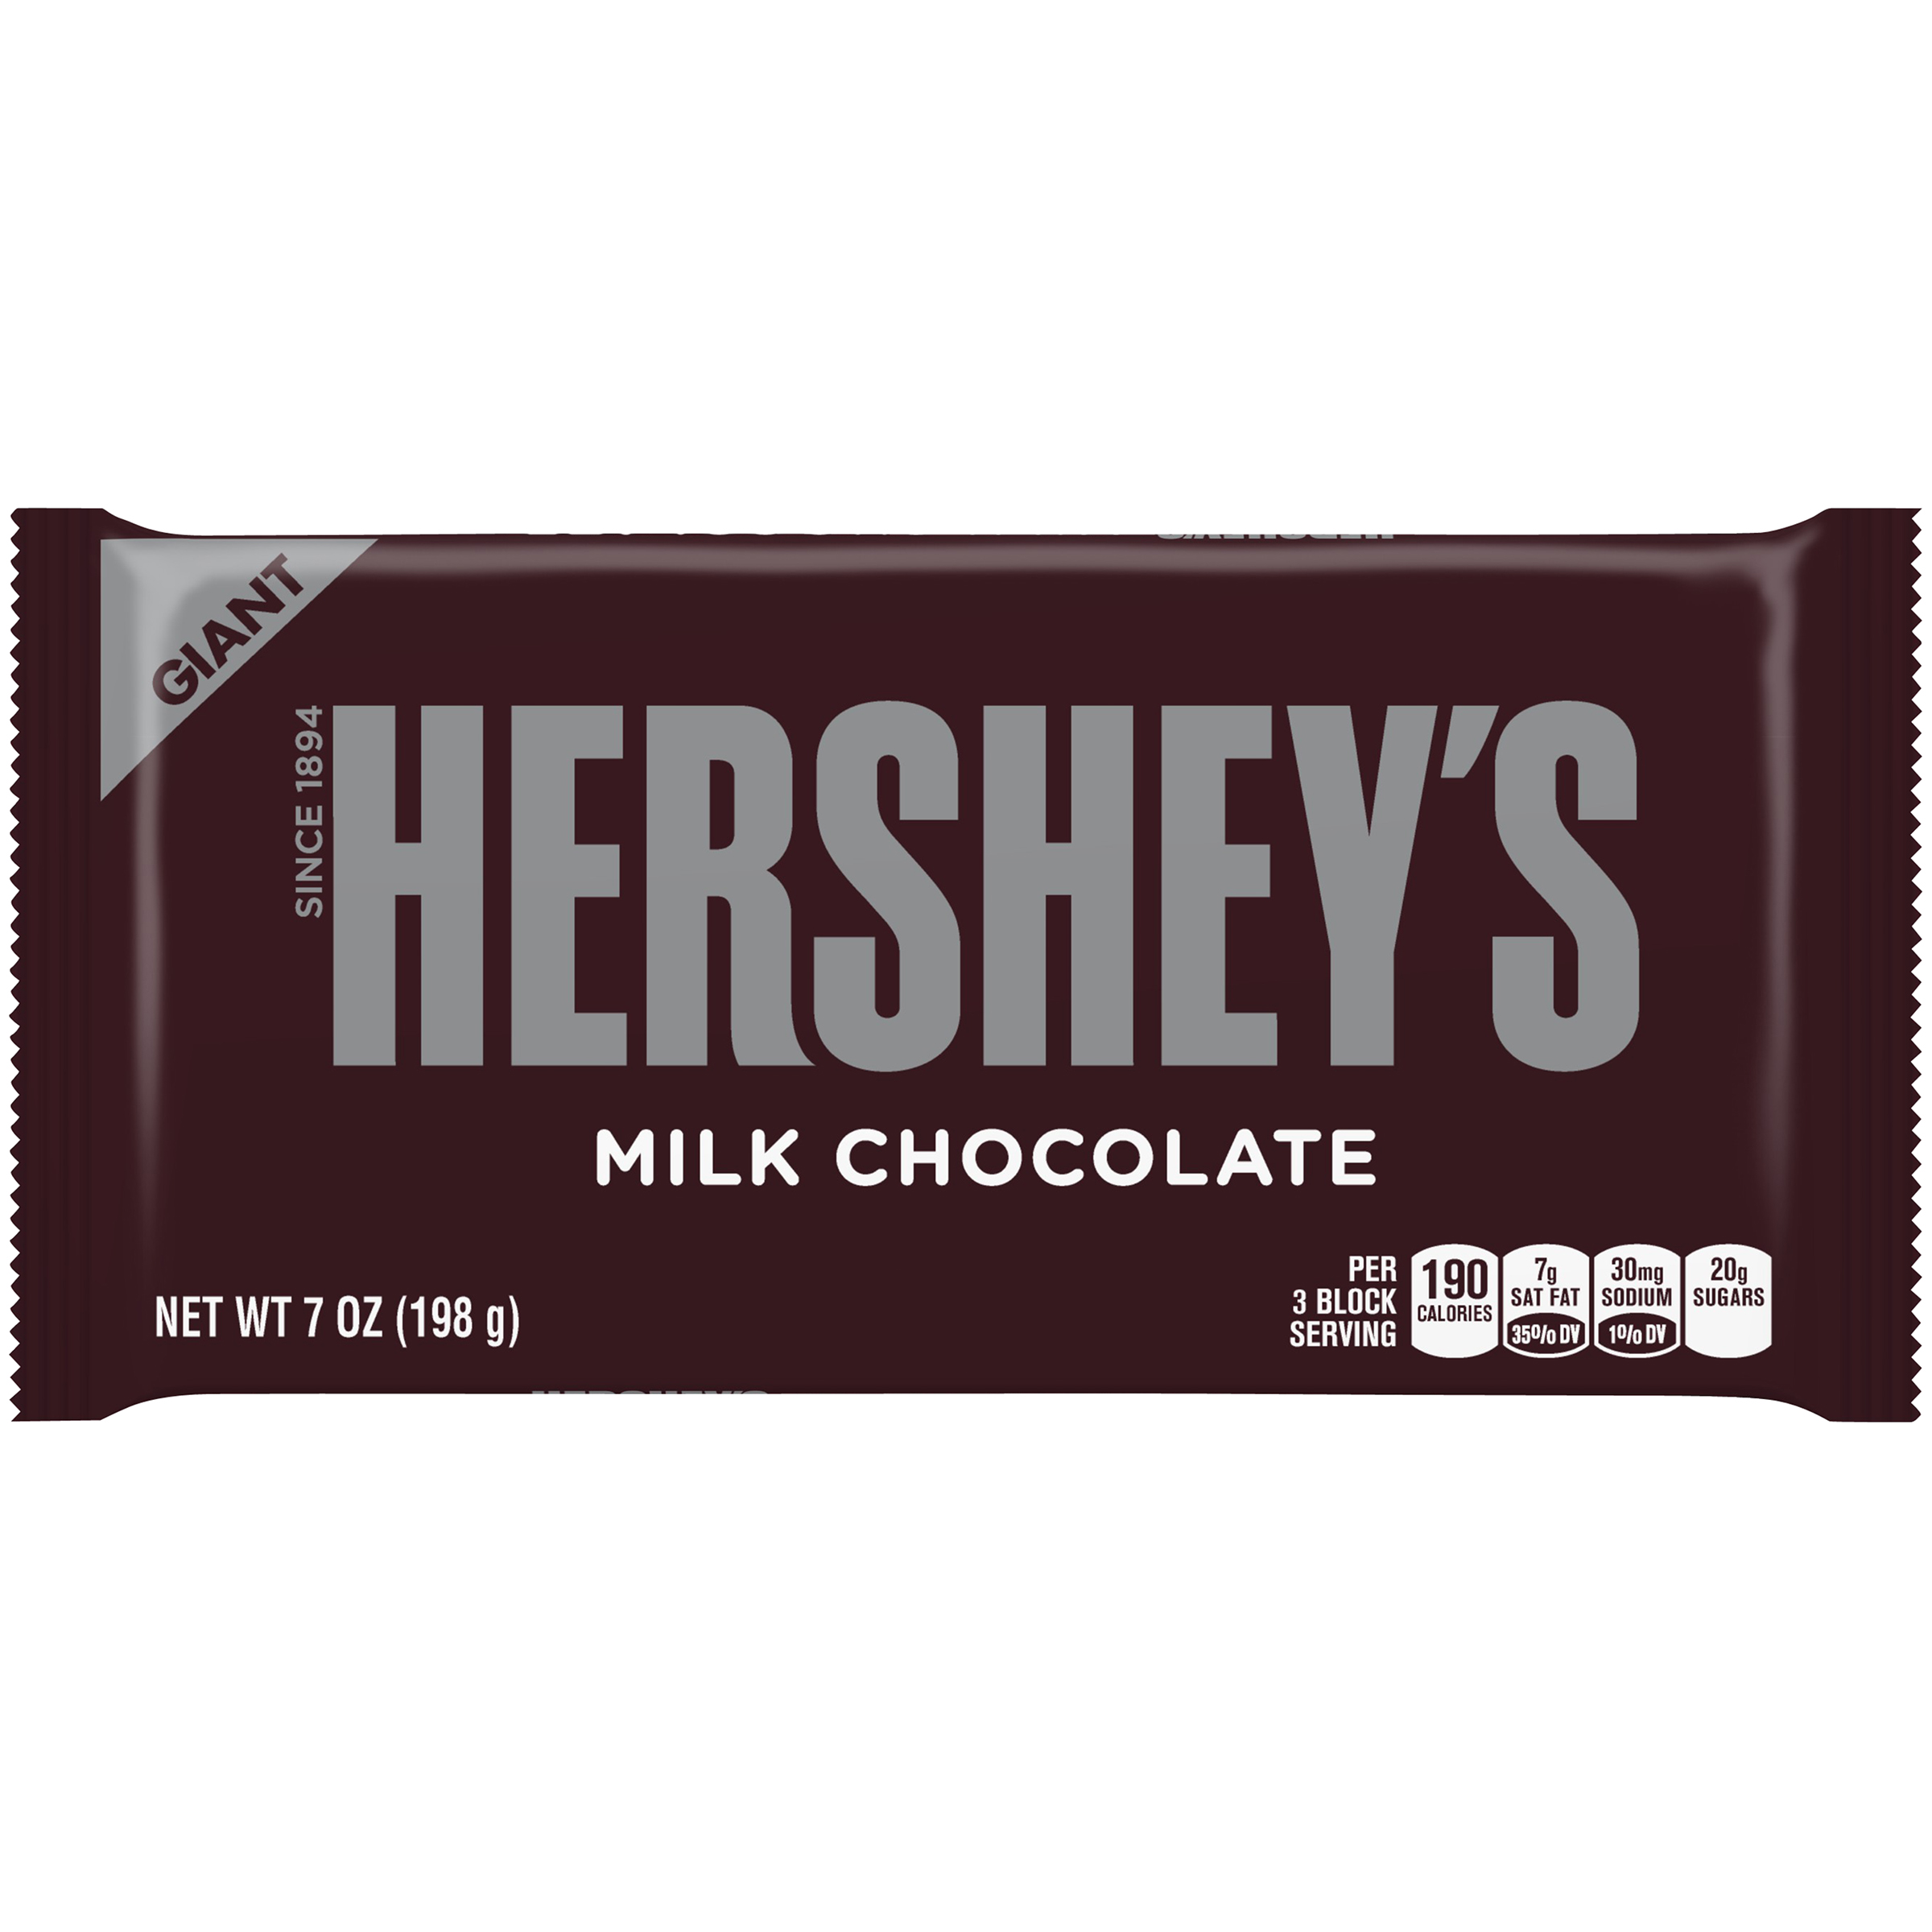 HERSHEY'S Giant Milk Chocolate Bar, 7 oz by The Hershey Company